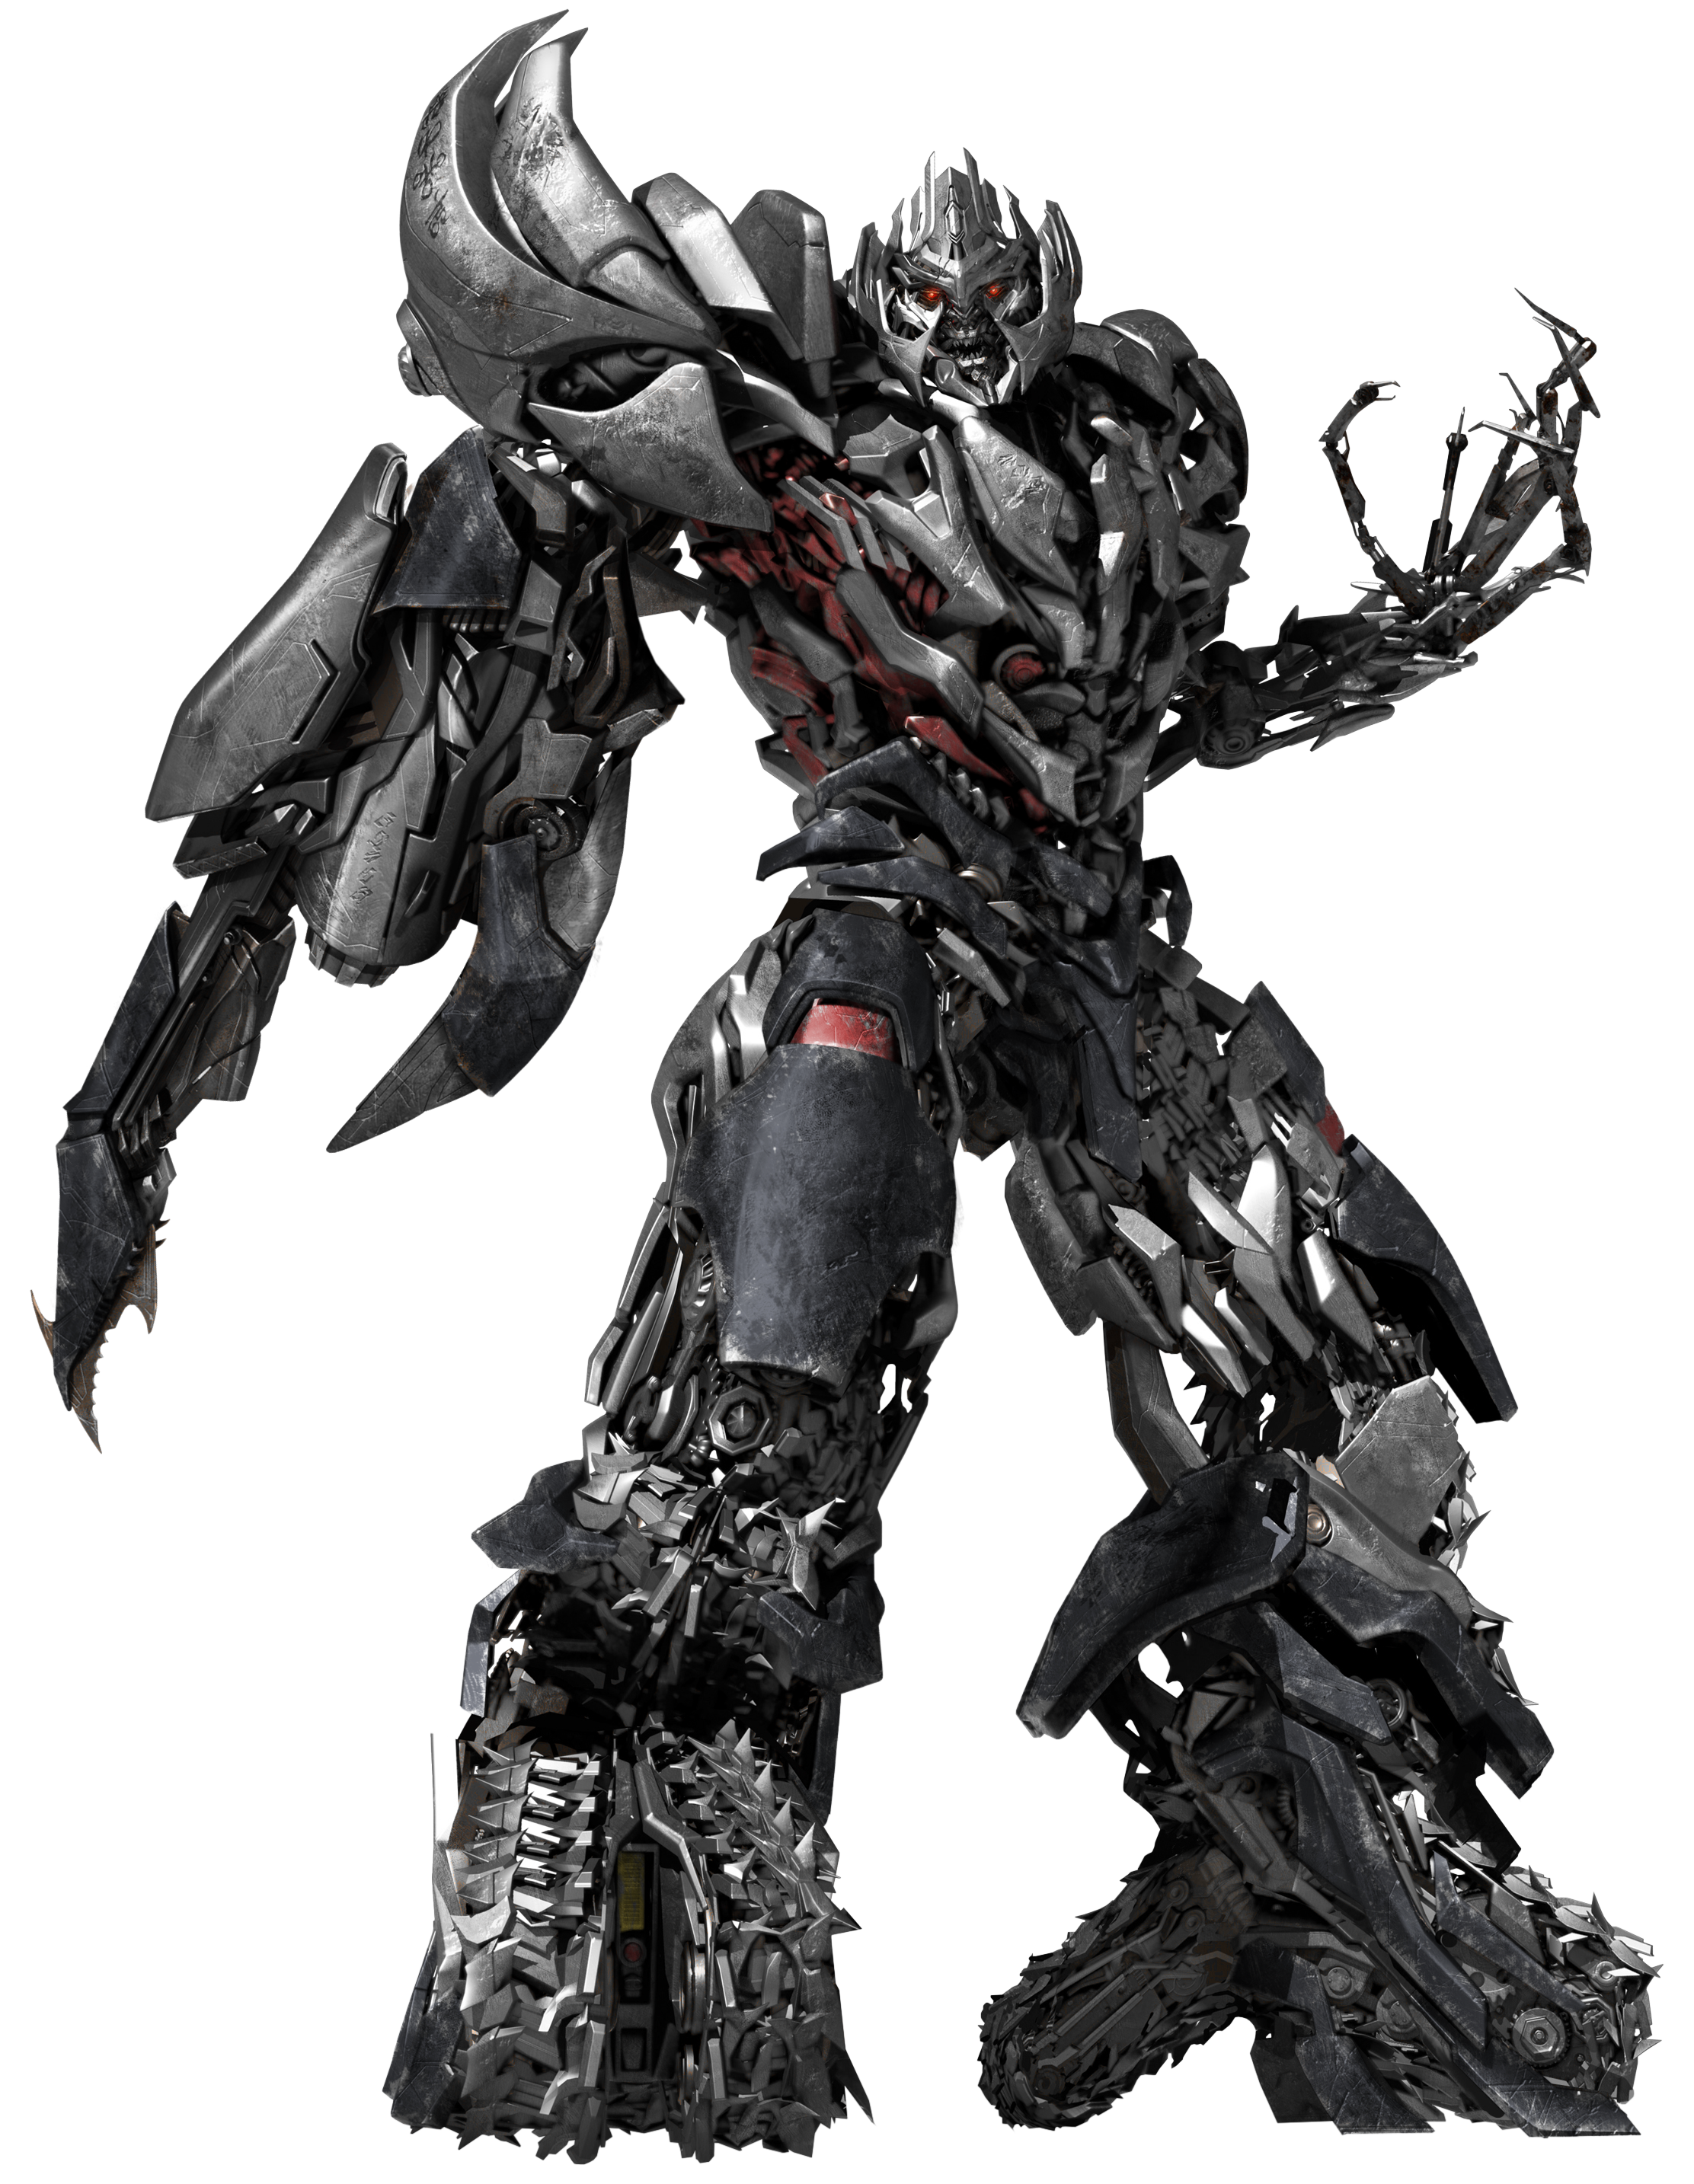 Megatron drawing tf prime. Rotf g promo by